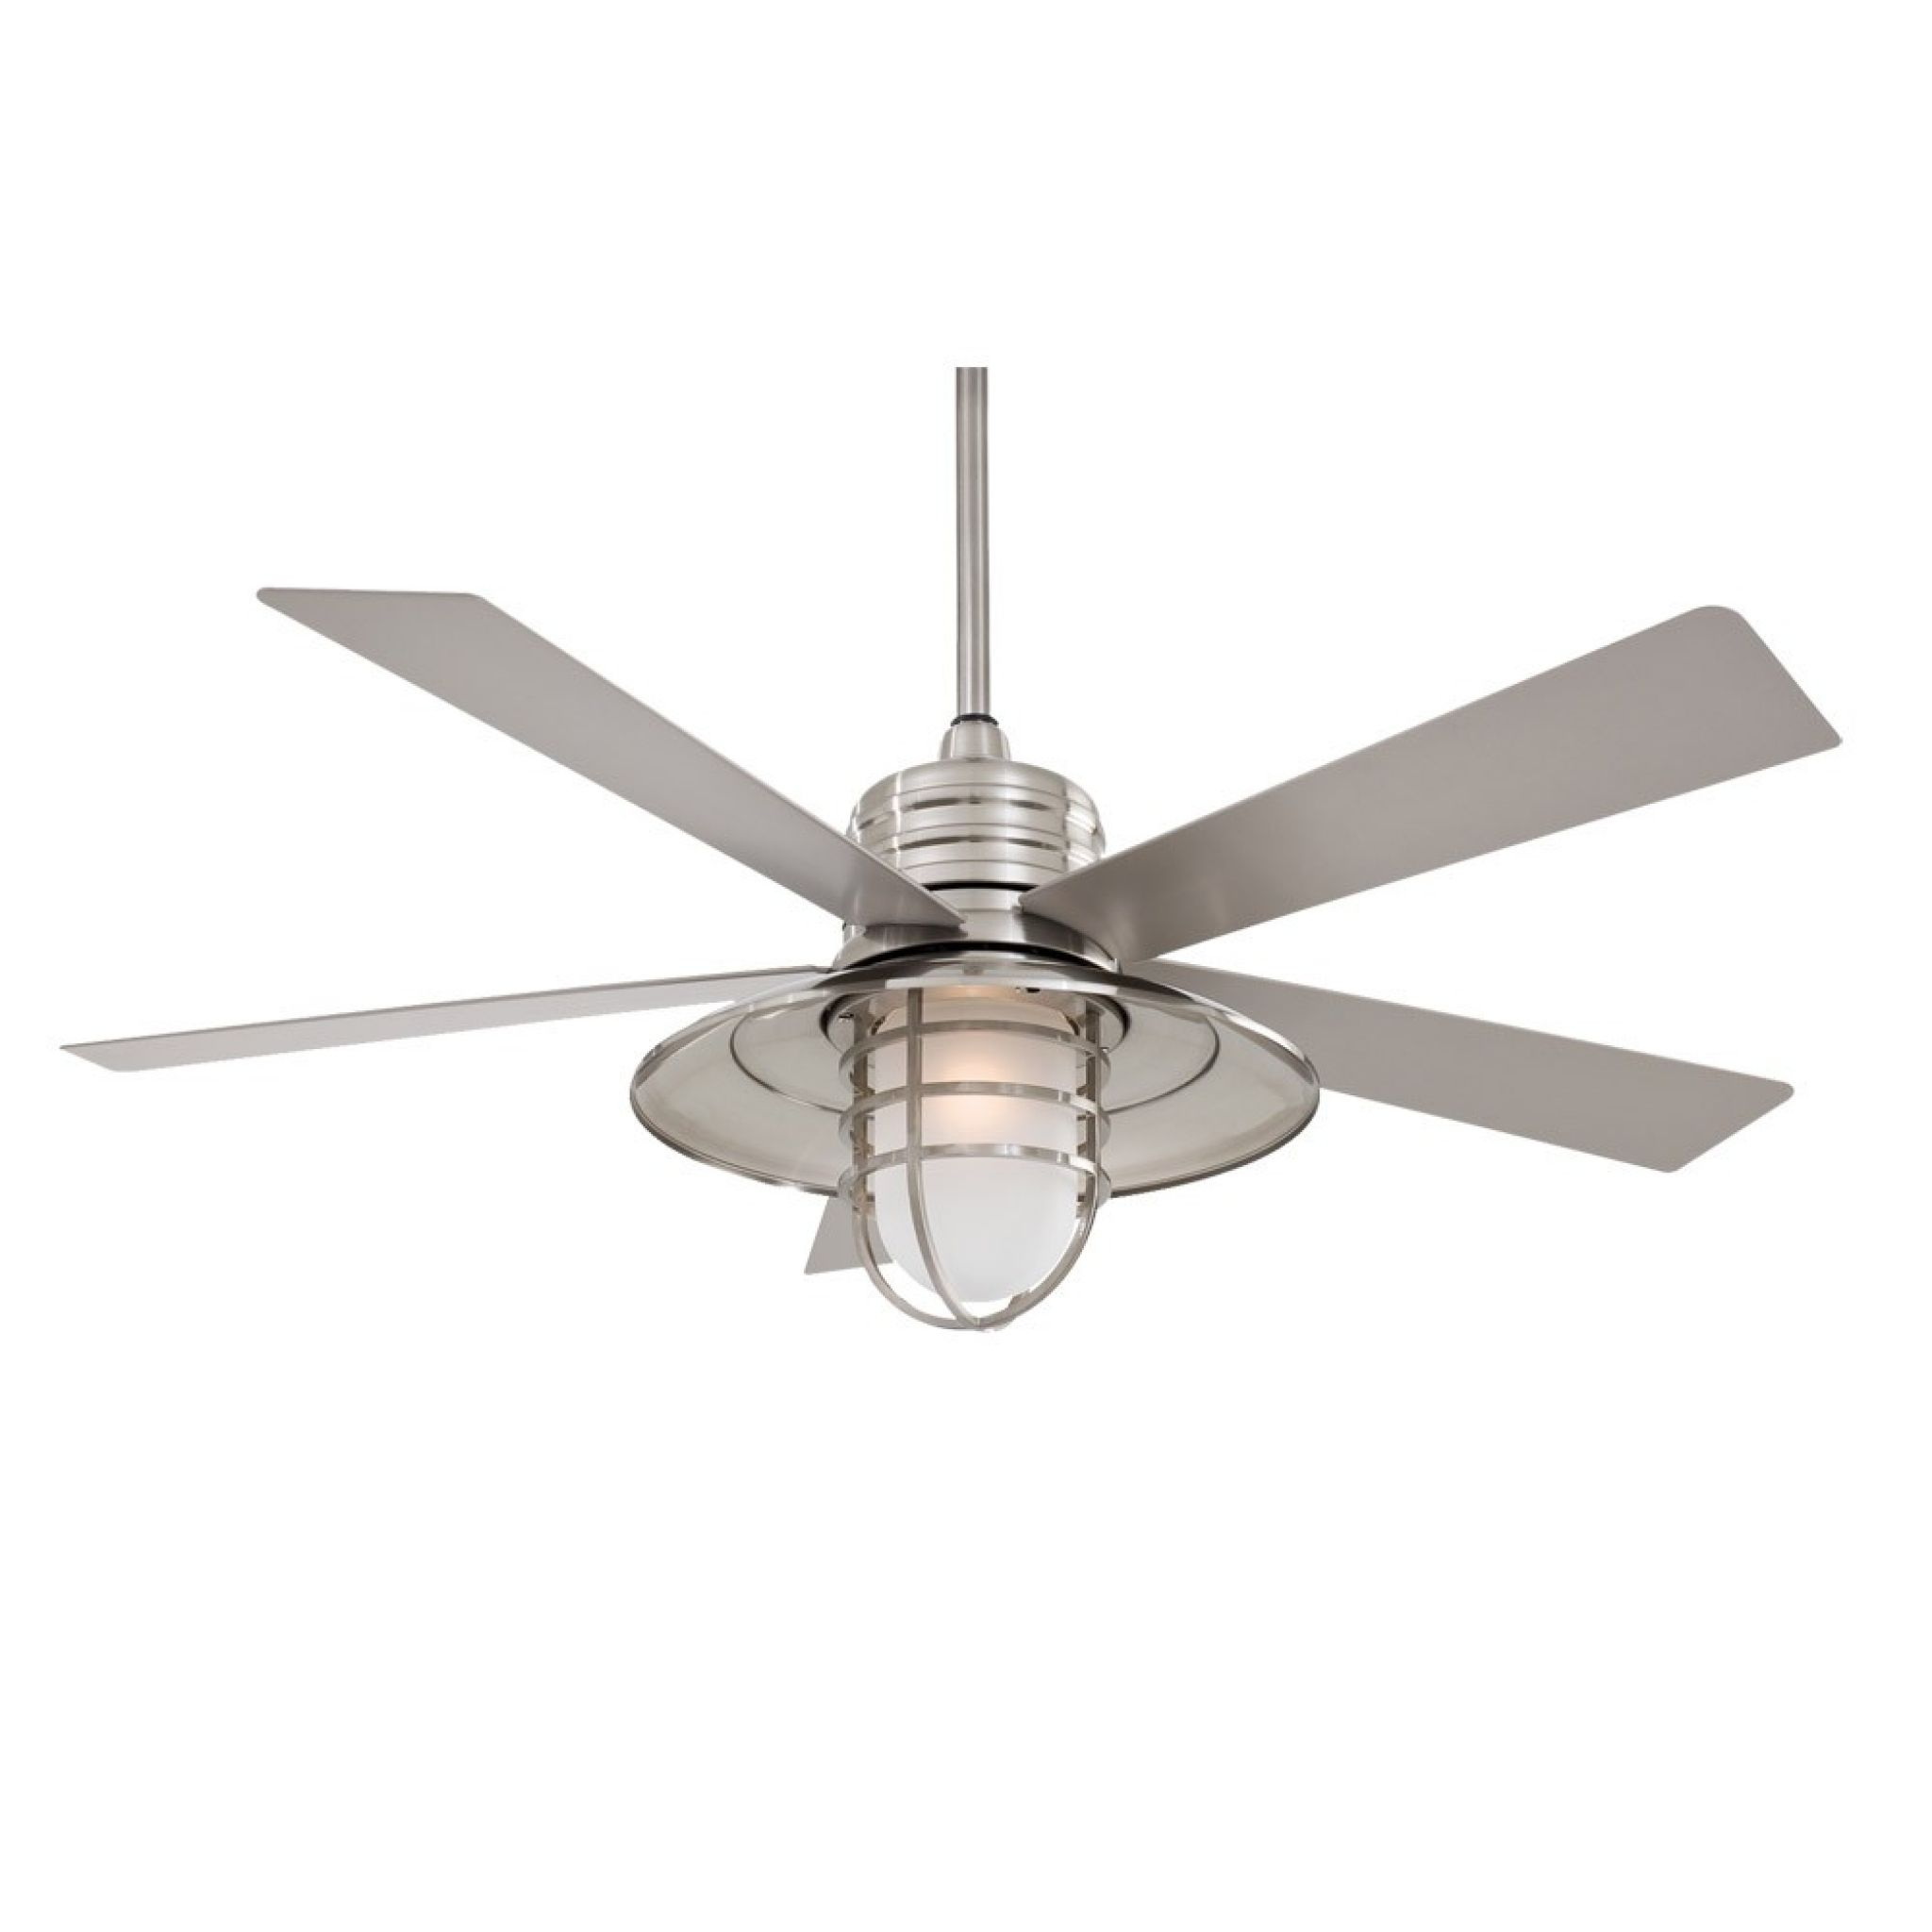 Pin By Annora On Home Interior Pinterest Ceiling Fan